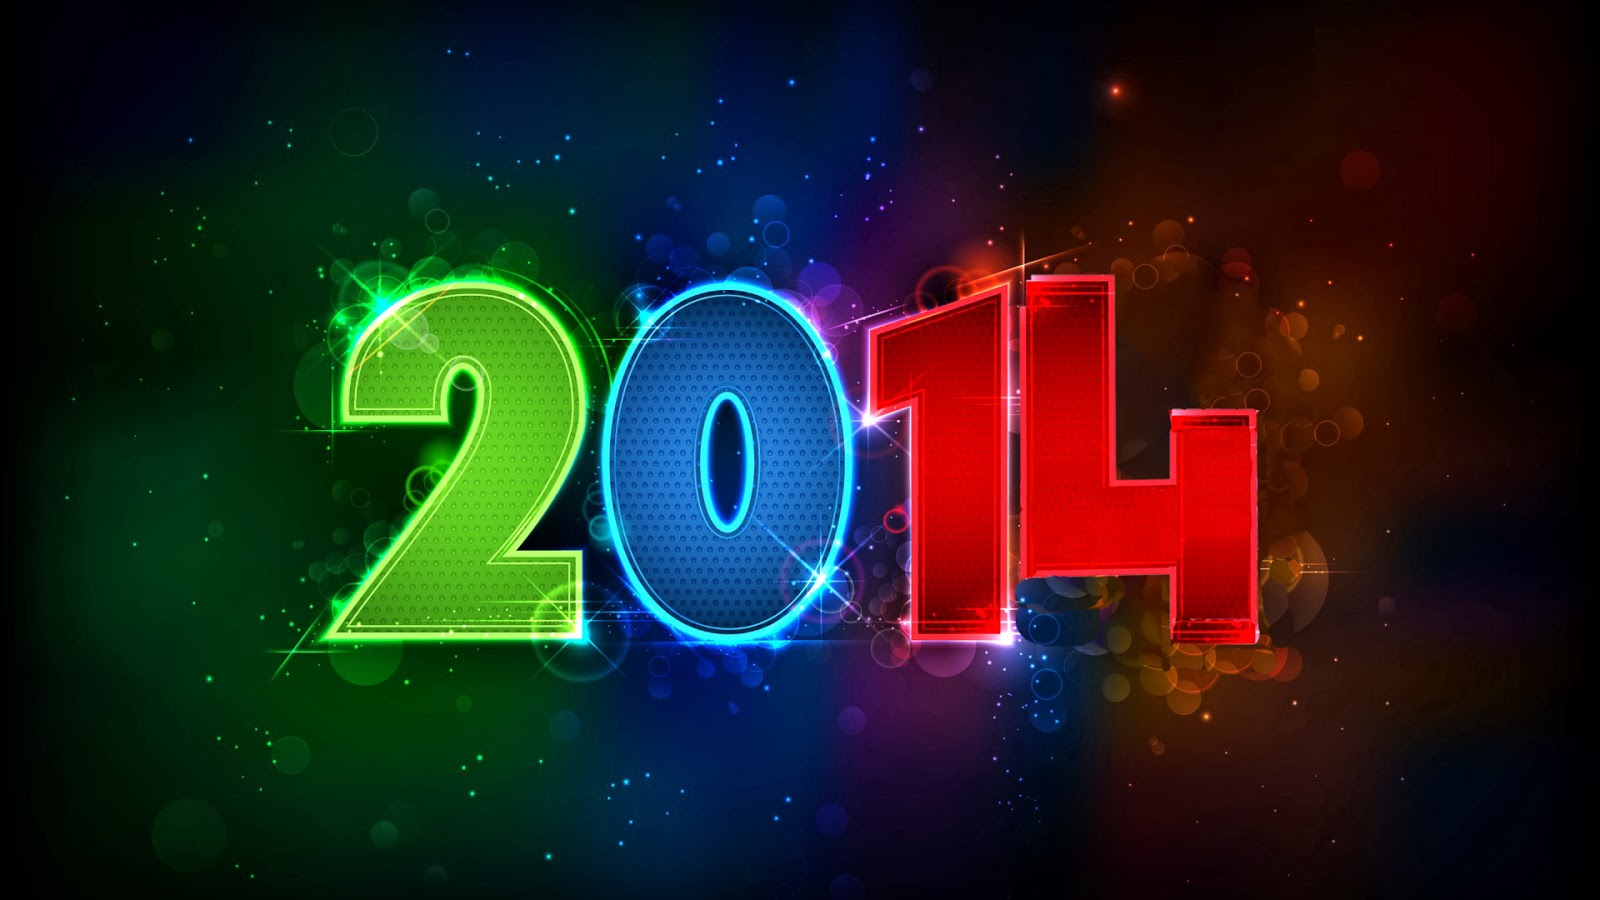 Colorful 2014 New Year Text Hd Wallpaper